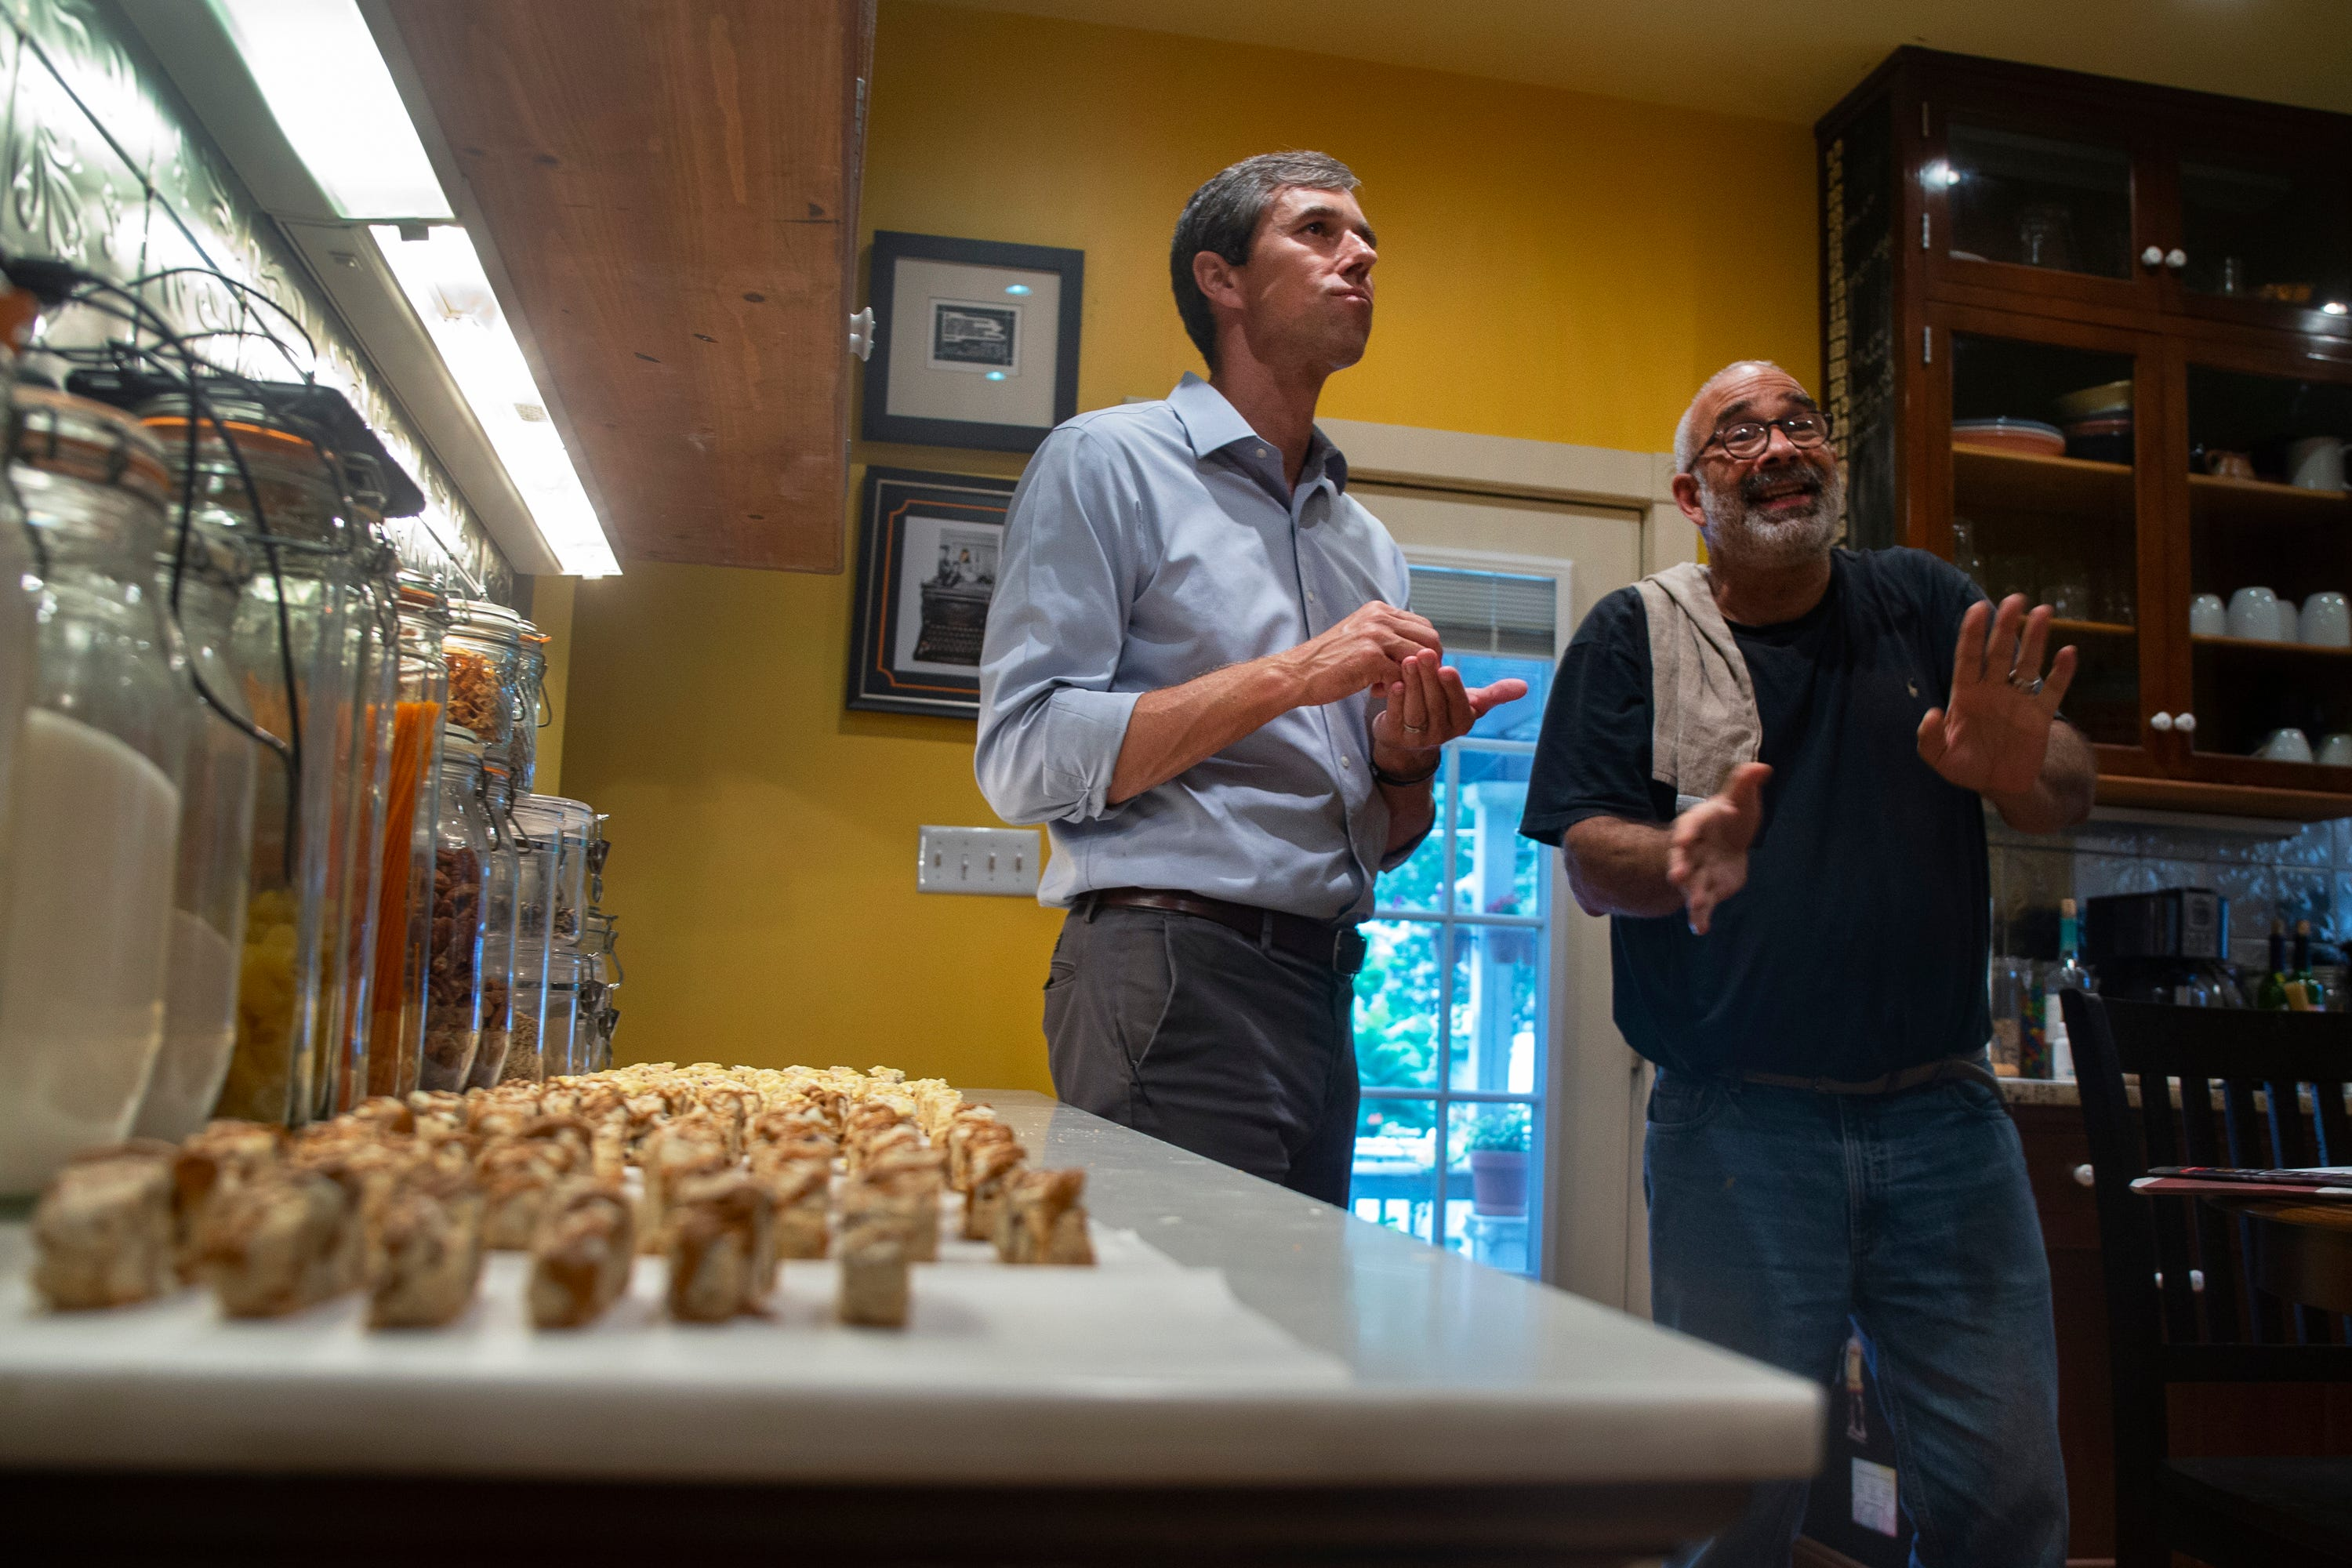 Photos: Beto O'Rourke knocks on doors, campaigns in North Des Moines